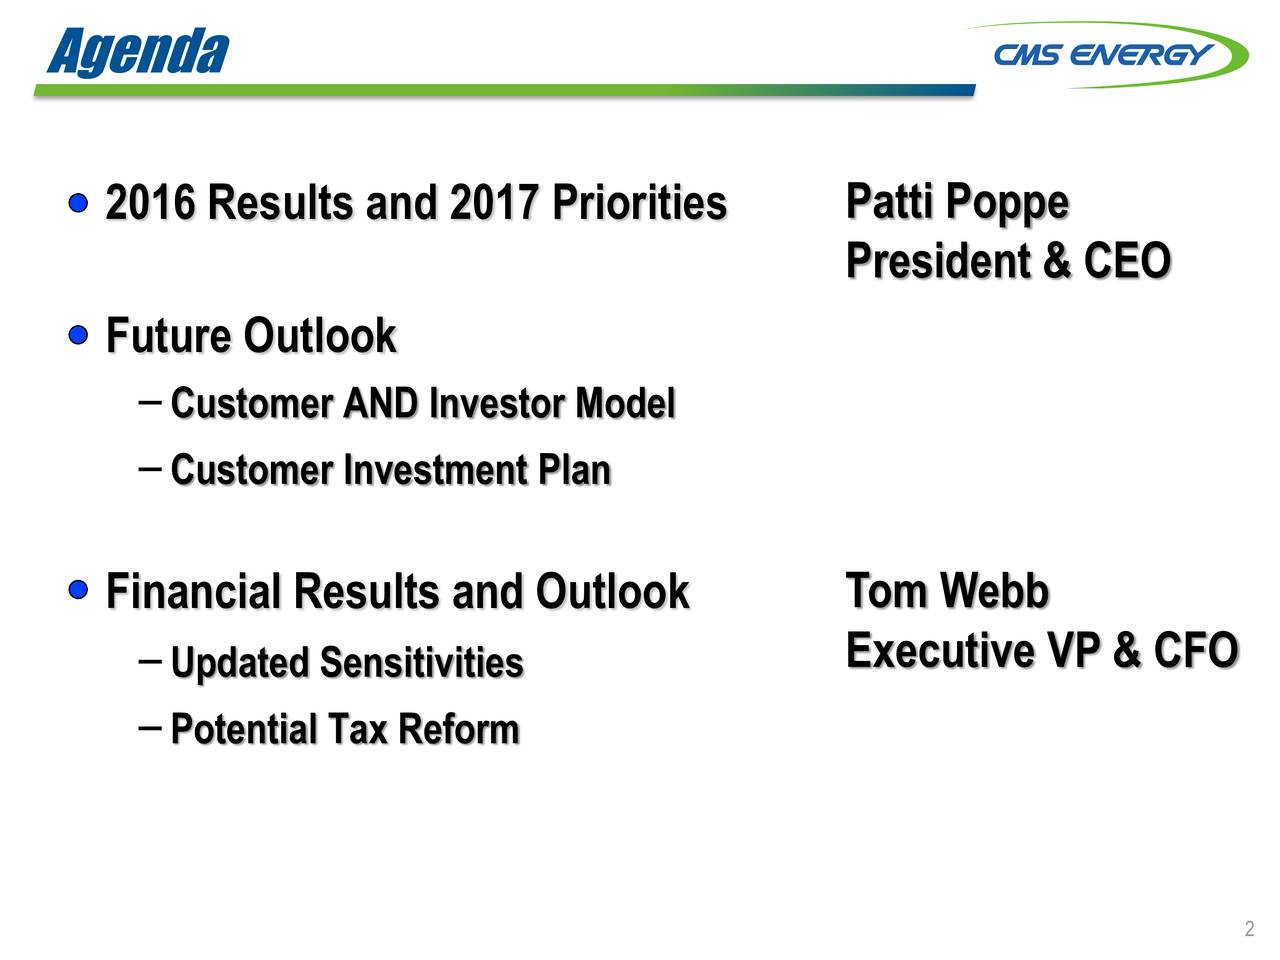 2016 Results and 2017 Priorities Patti Poppe President & CEO Future Outlook Customer AND Investor Model Customer Investment Plan Financial Results and Outlook Tom Webb Updated Sensitivities Executive VP & CFO Potential Tax Reform 2